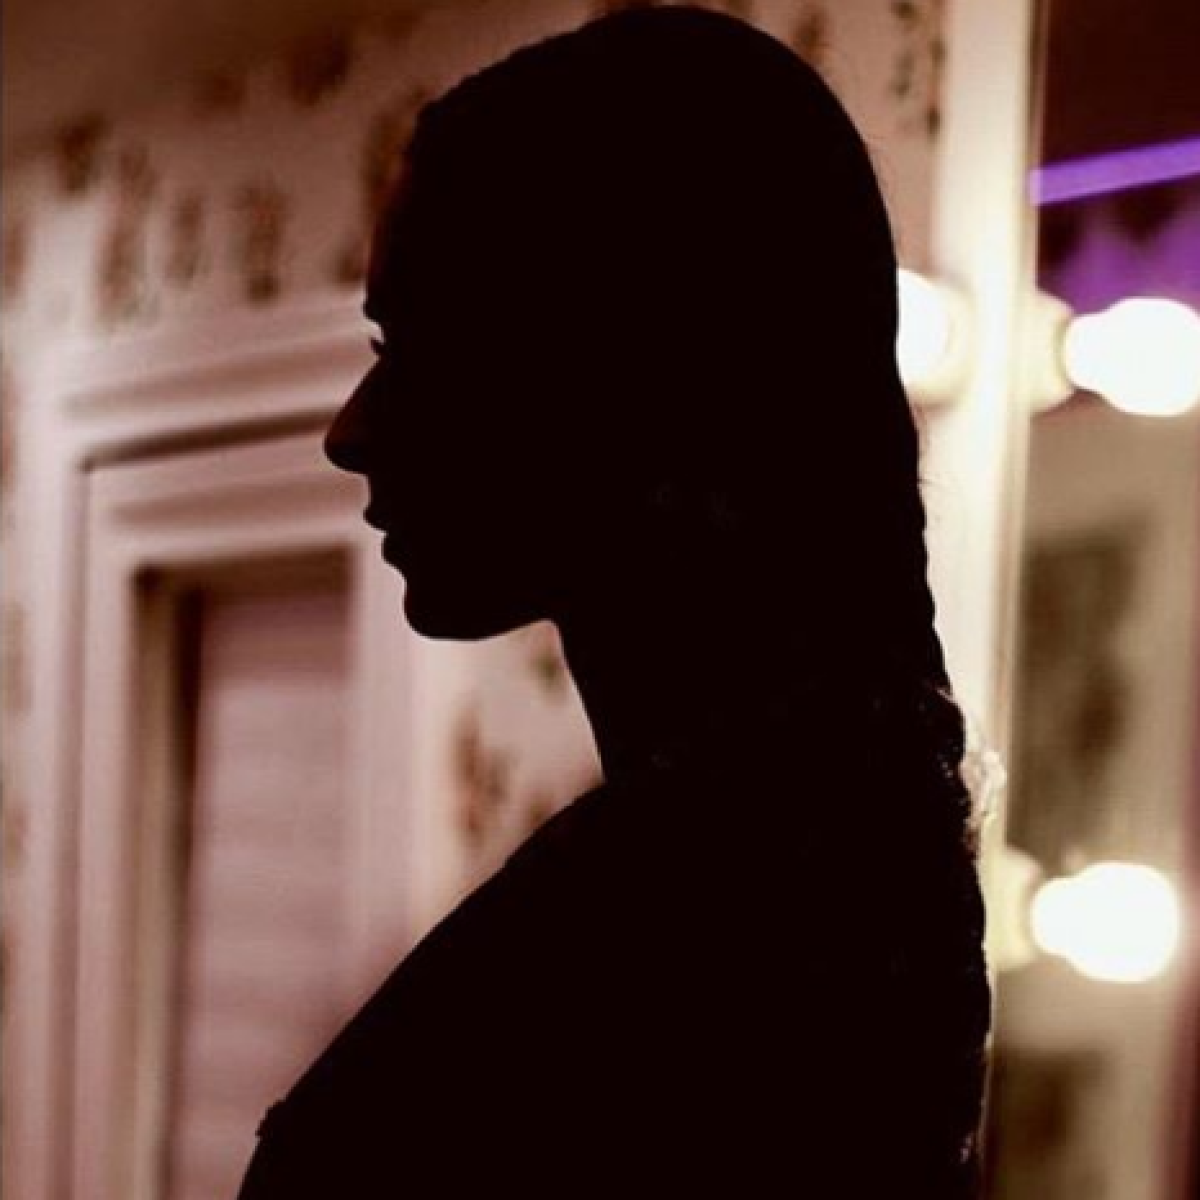 Manushi Chhillar shares her first picture for upcoming film 'Prithviraj'